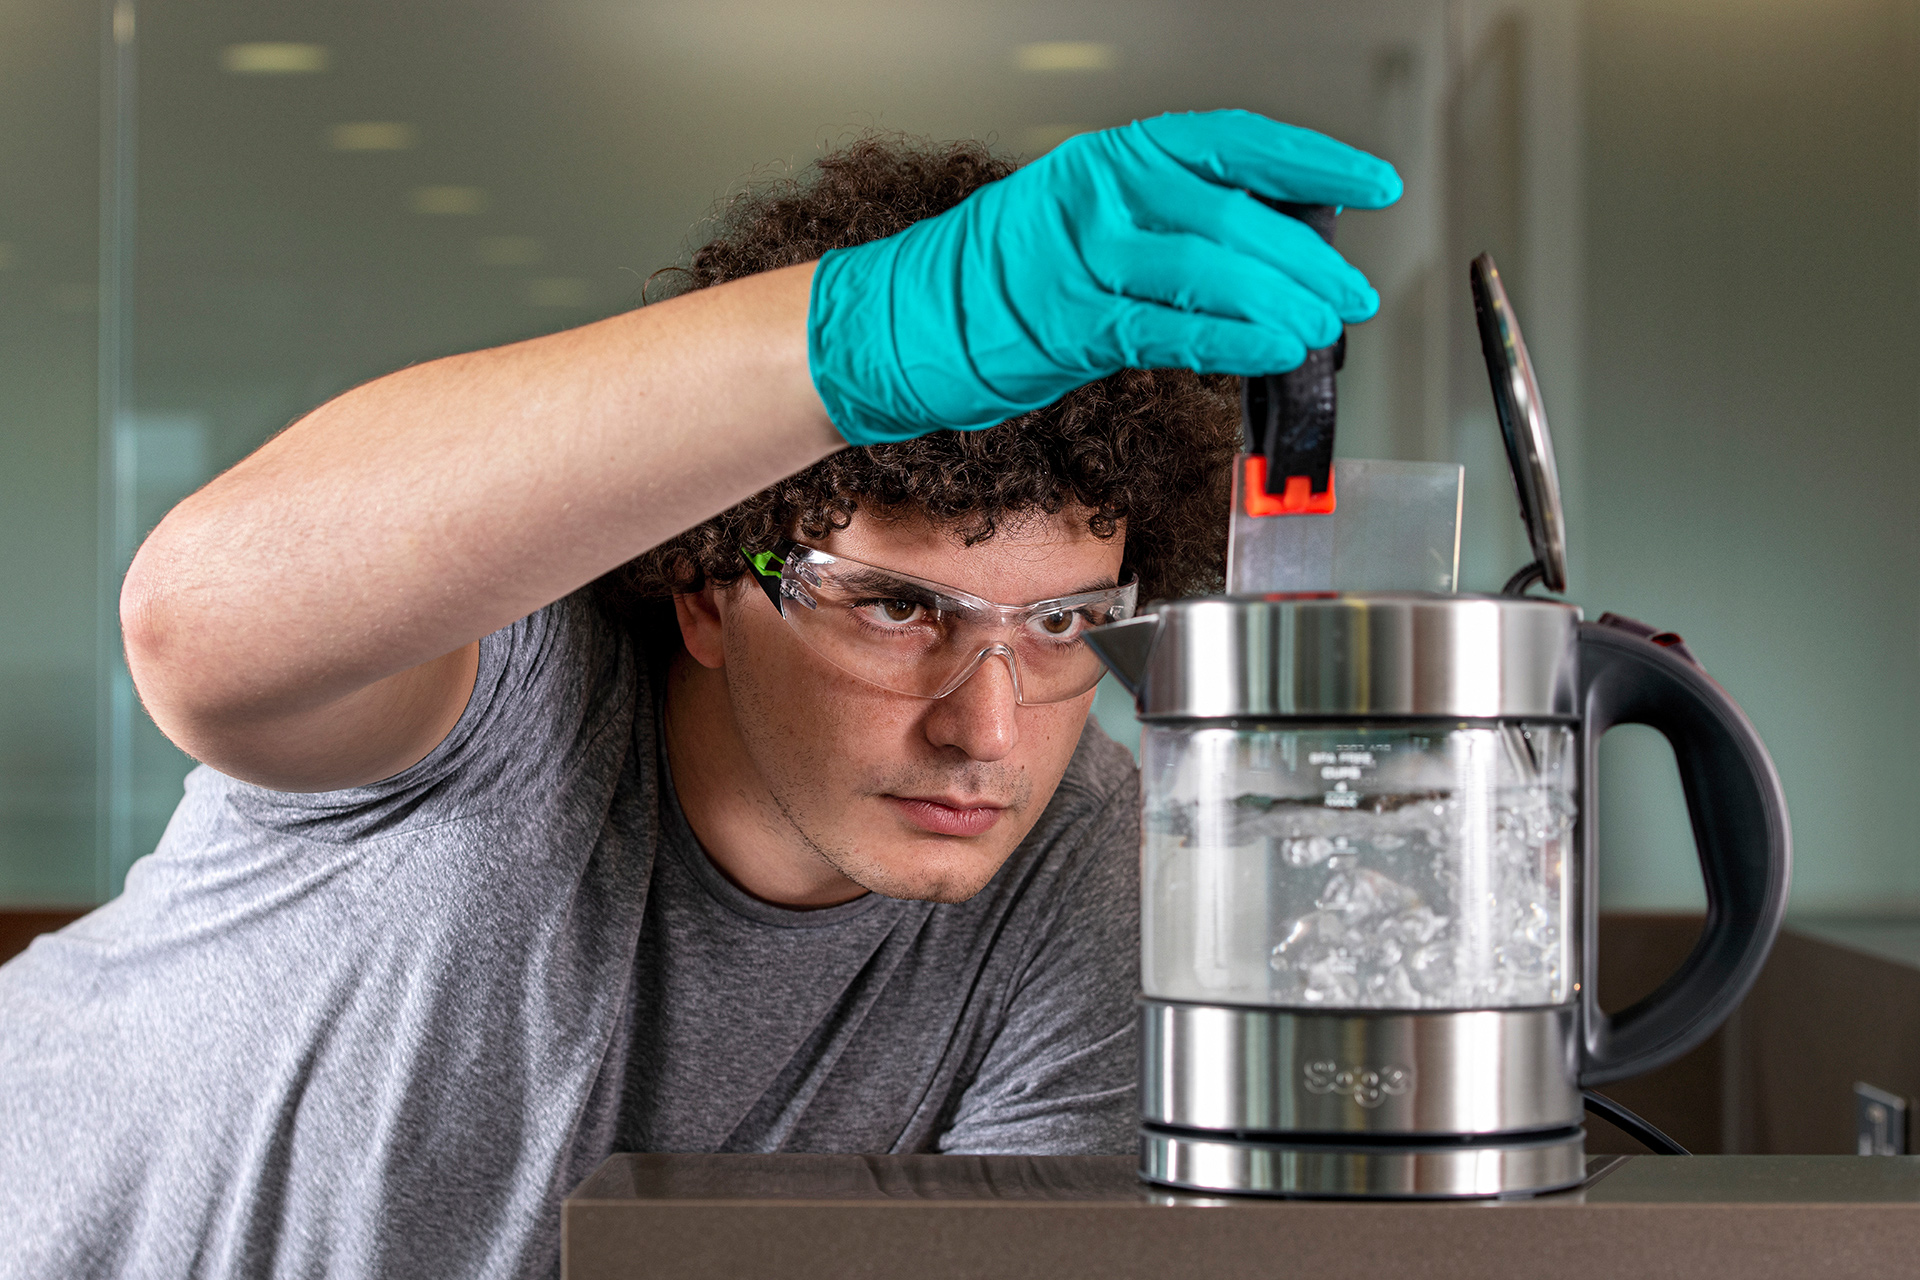 Researcher Youssef Assaf drops a square of silica glass in a kettle of boiling water to demonstrate its durability